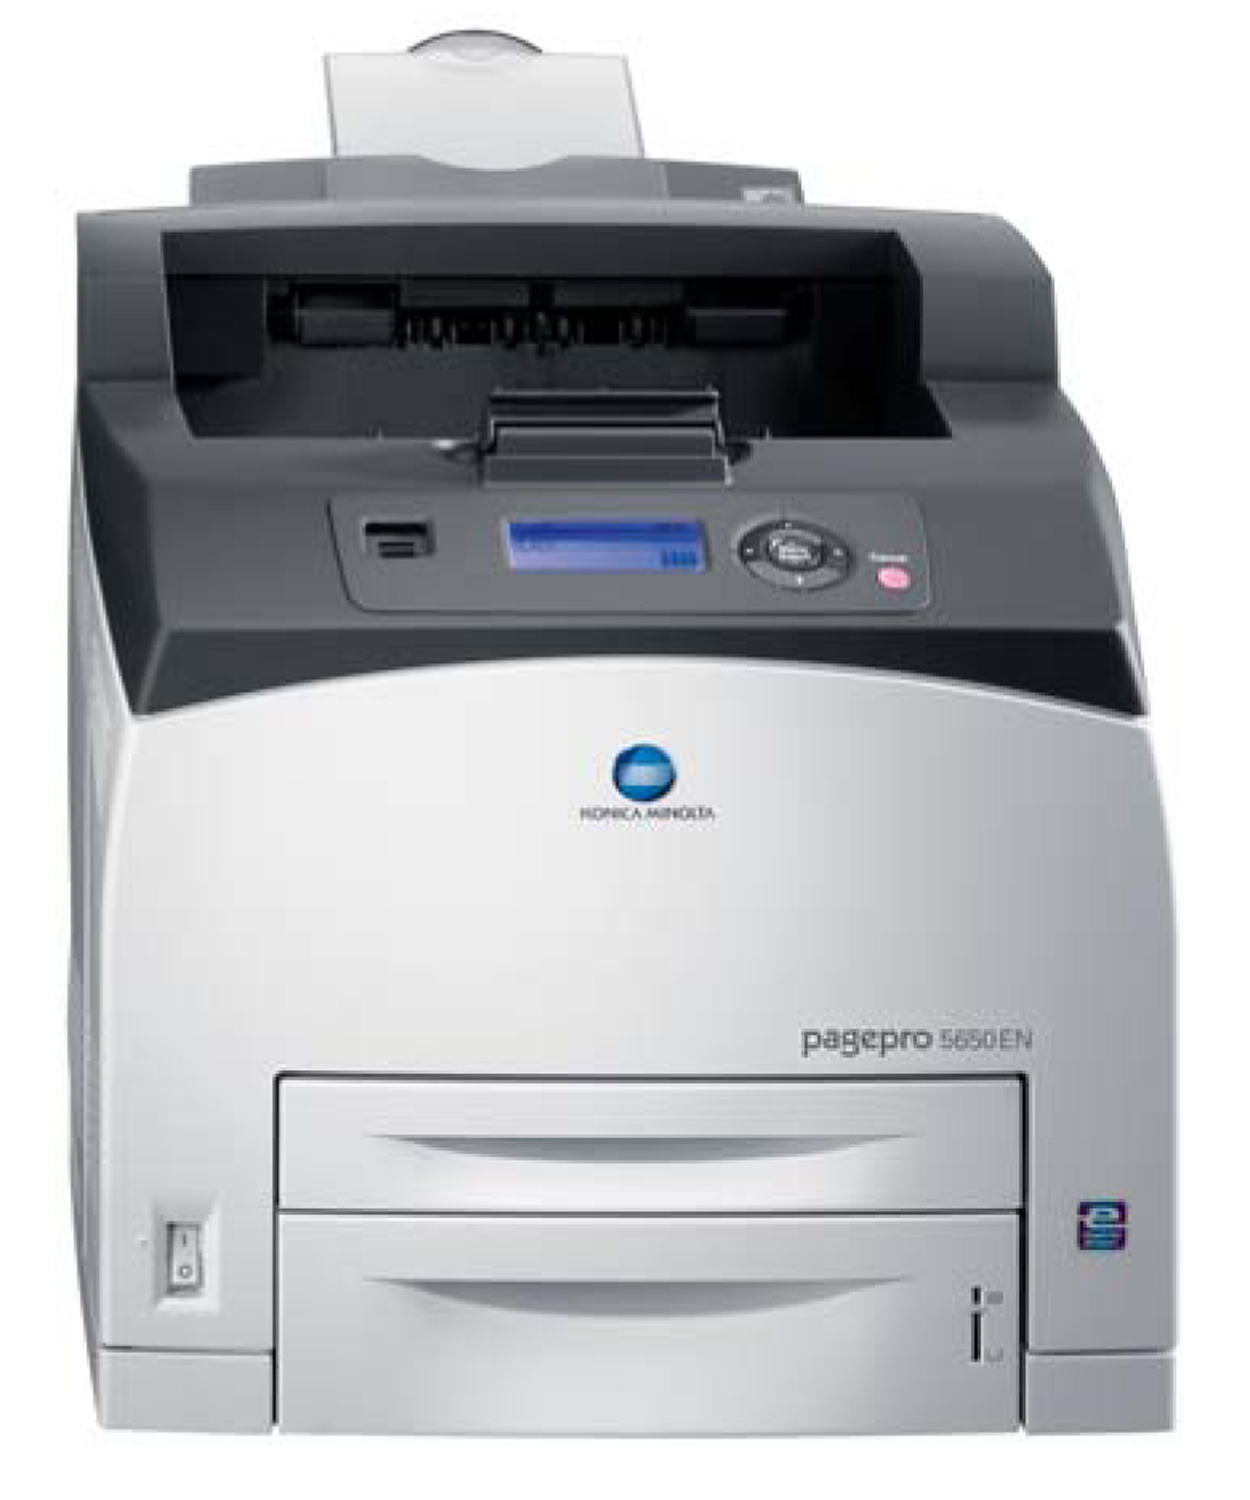 Speed up your black and white printing with a pagepro 5650EN from Konica  Minolta.